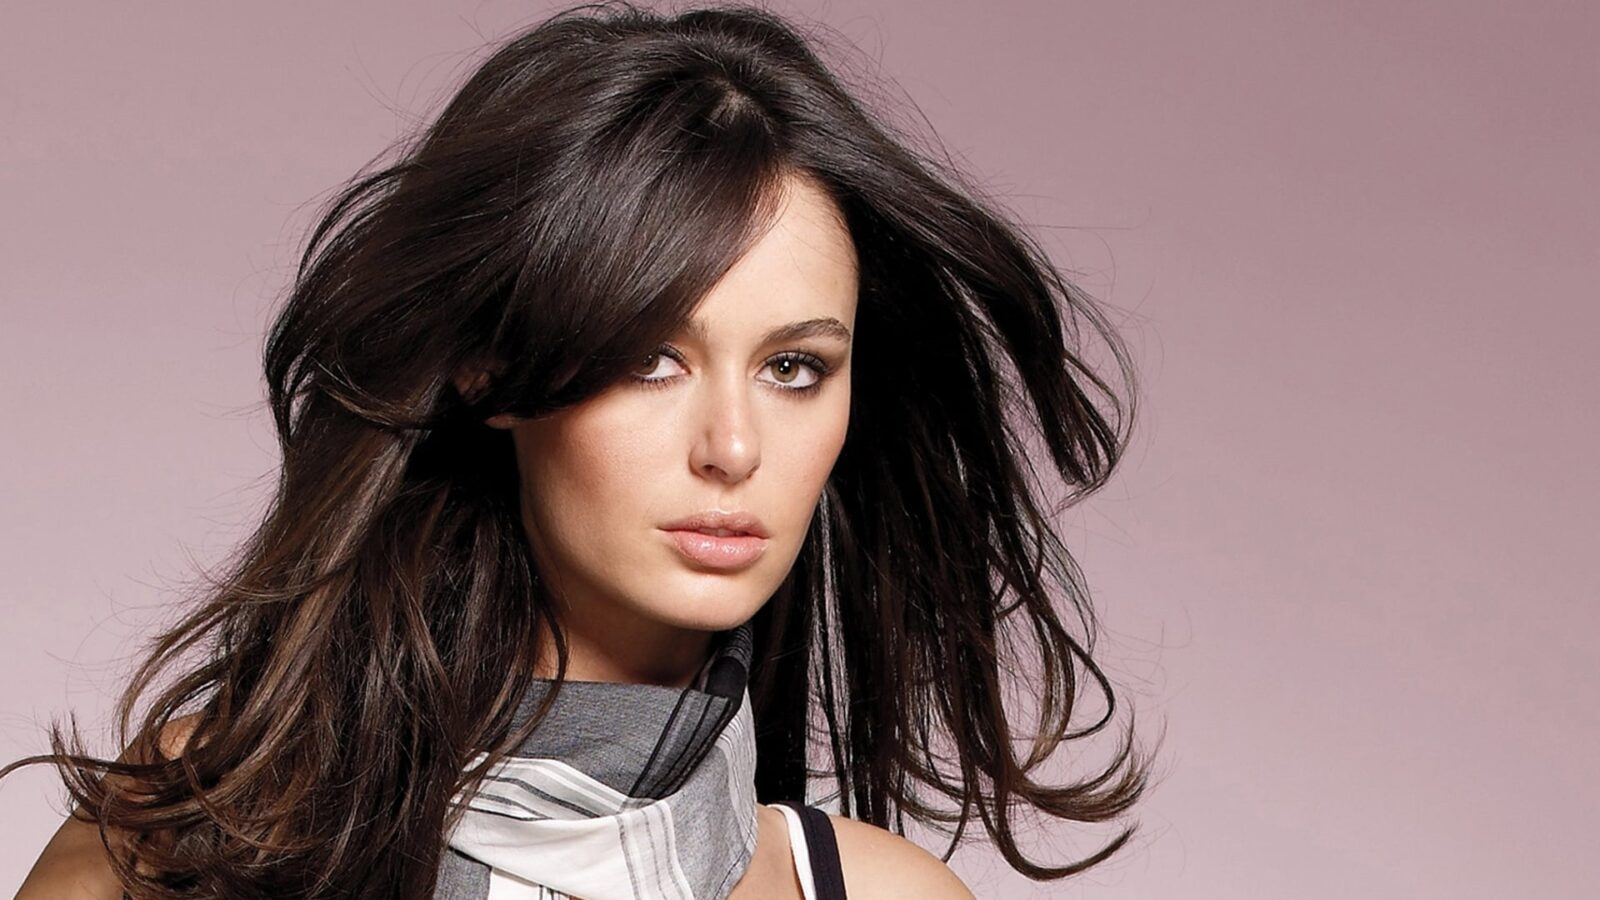 Download Wallpapers Cars Bikes 20 Nicole Trunfio Wallpapers Hd Free Download